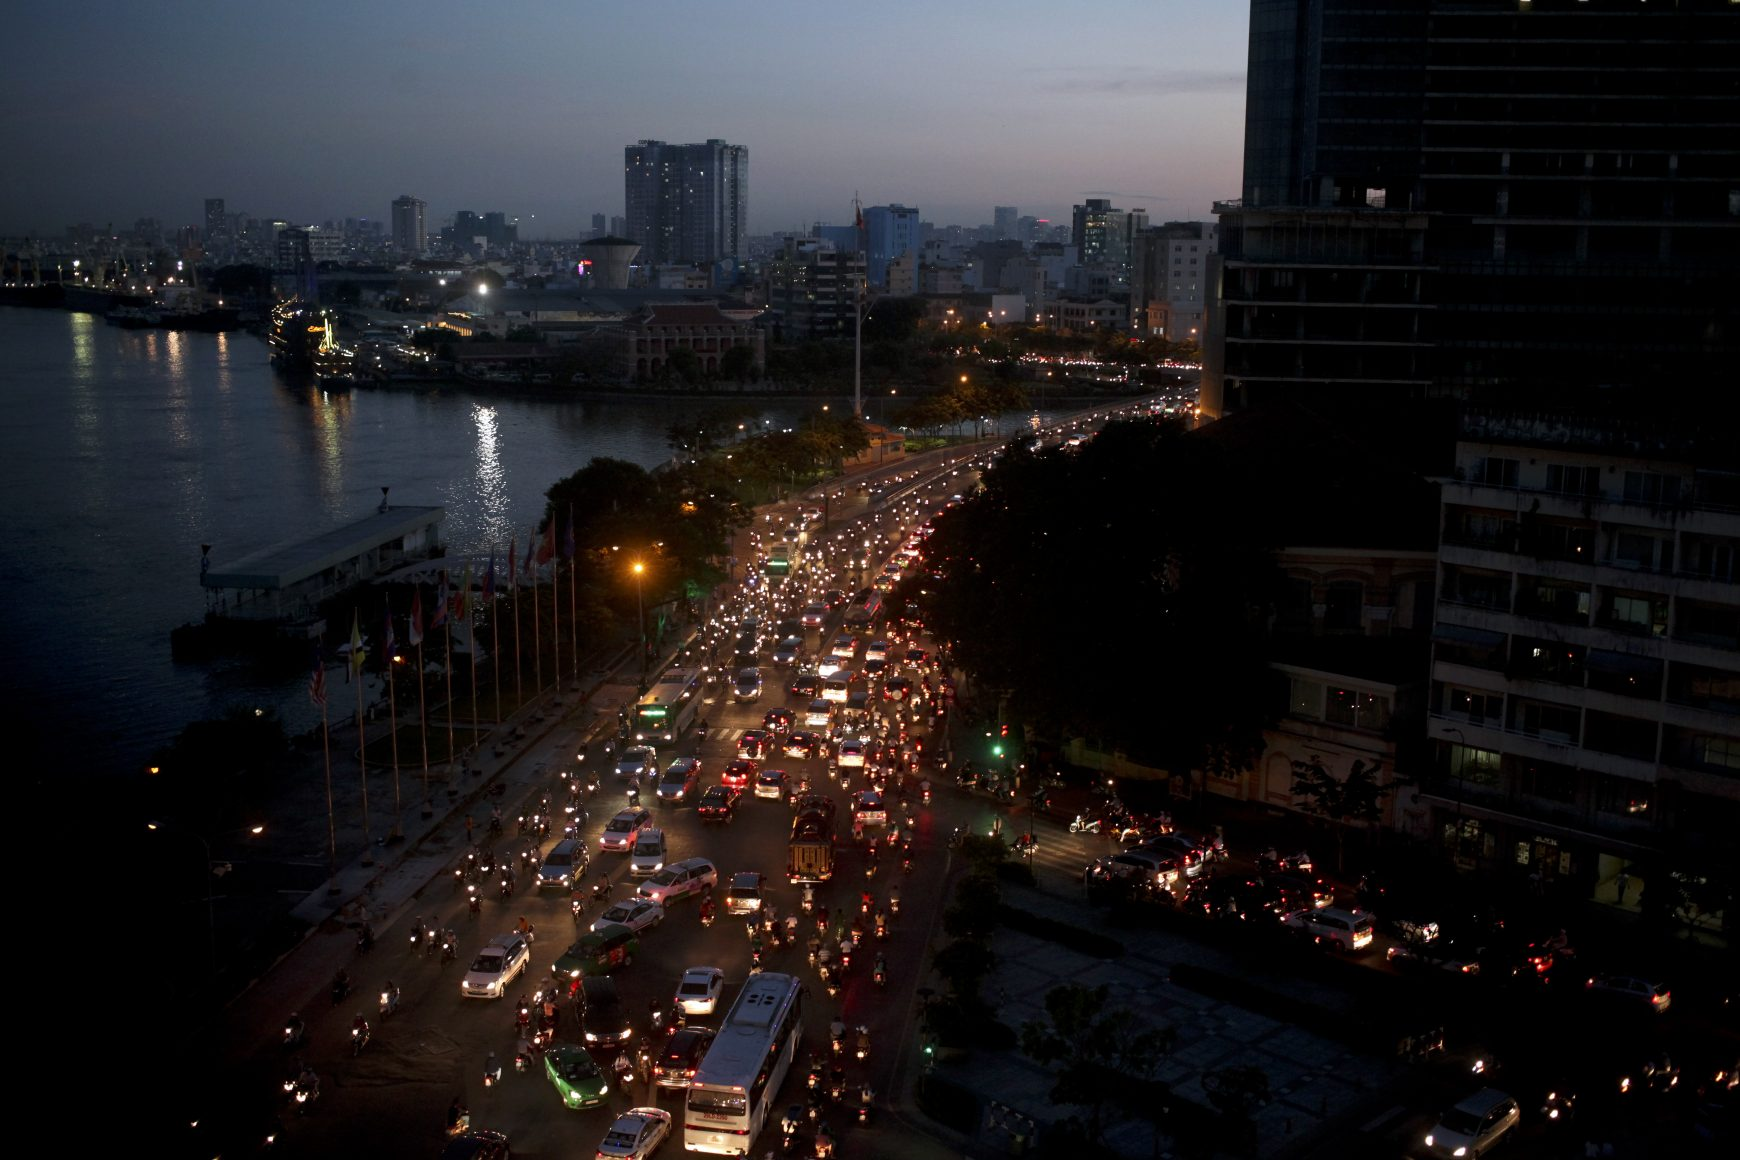 Traffic moves besides the Saigon river during rush hour in Ho Chi Minh City, Vietnam